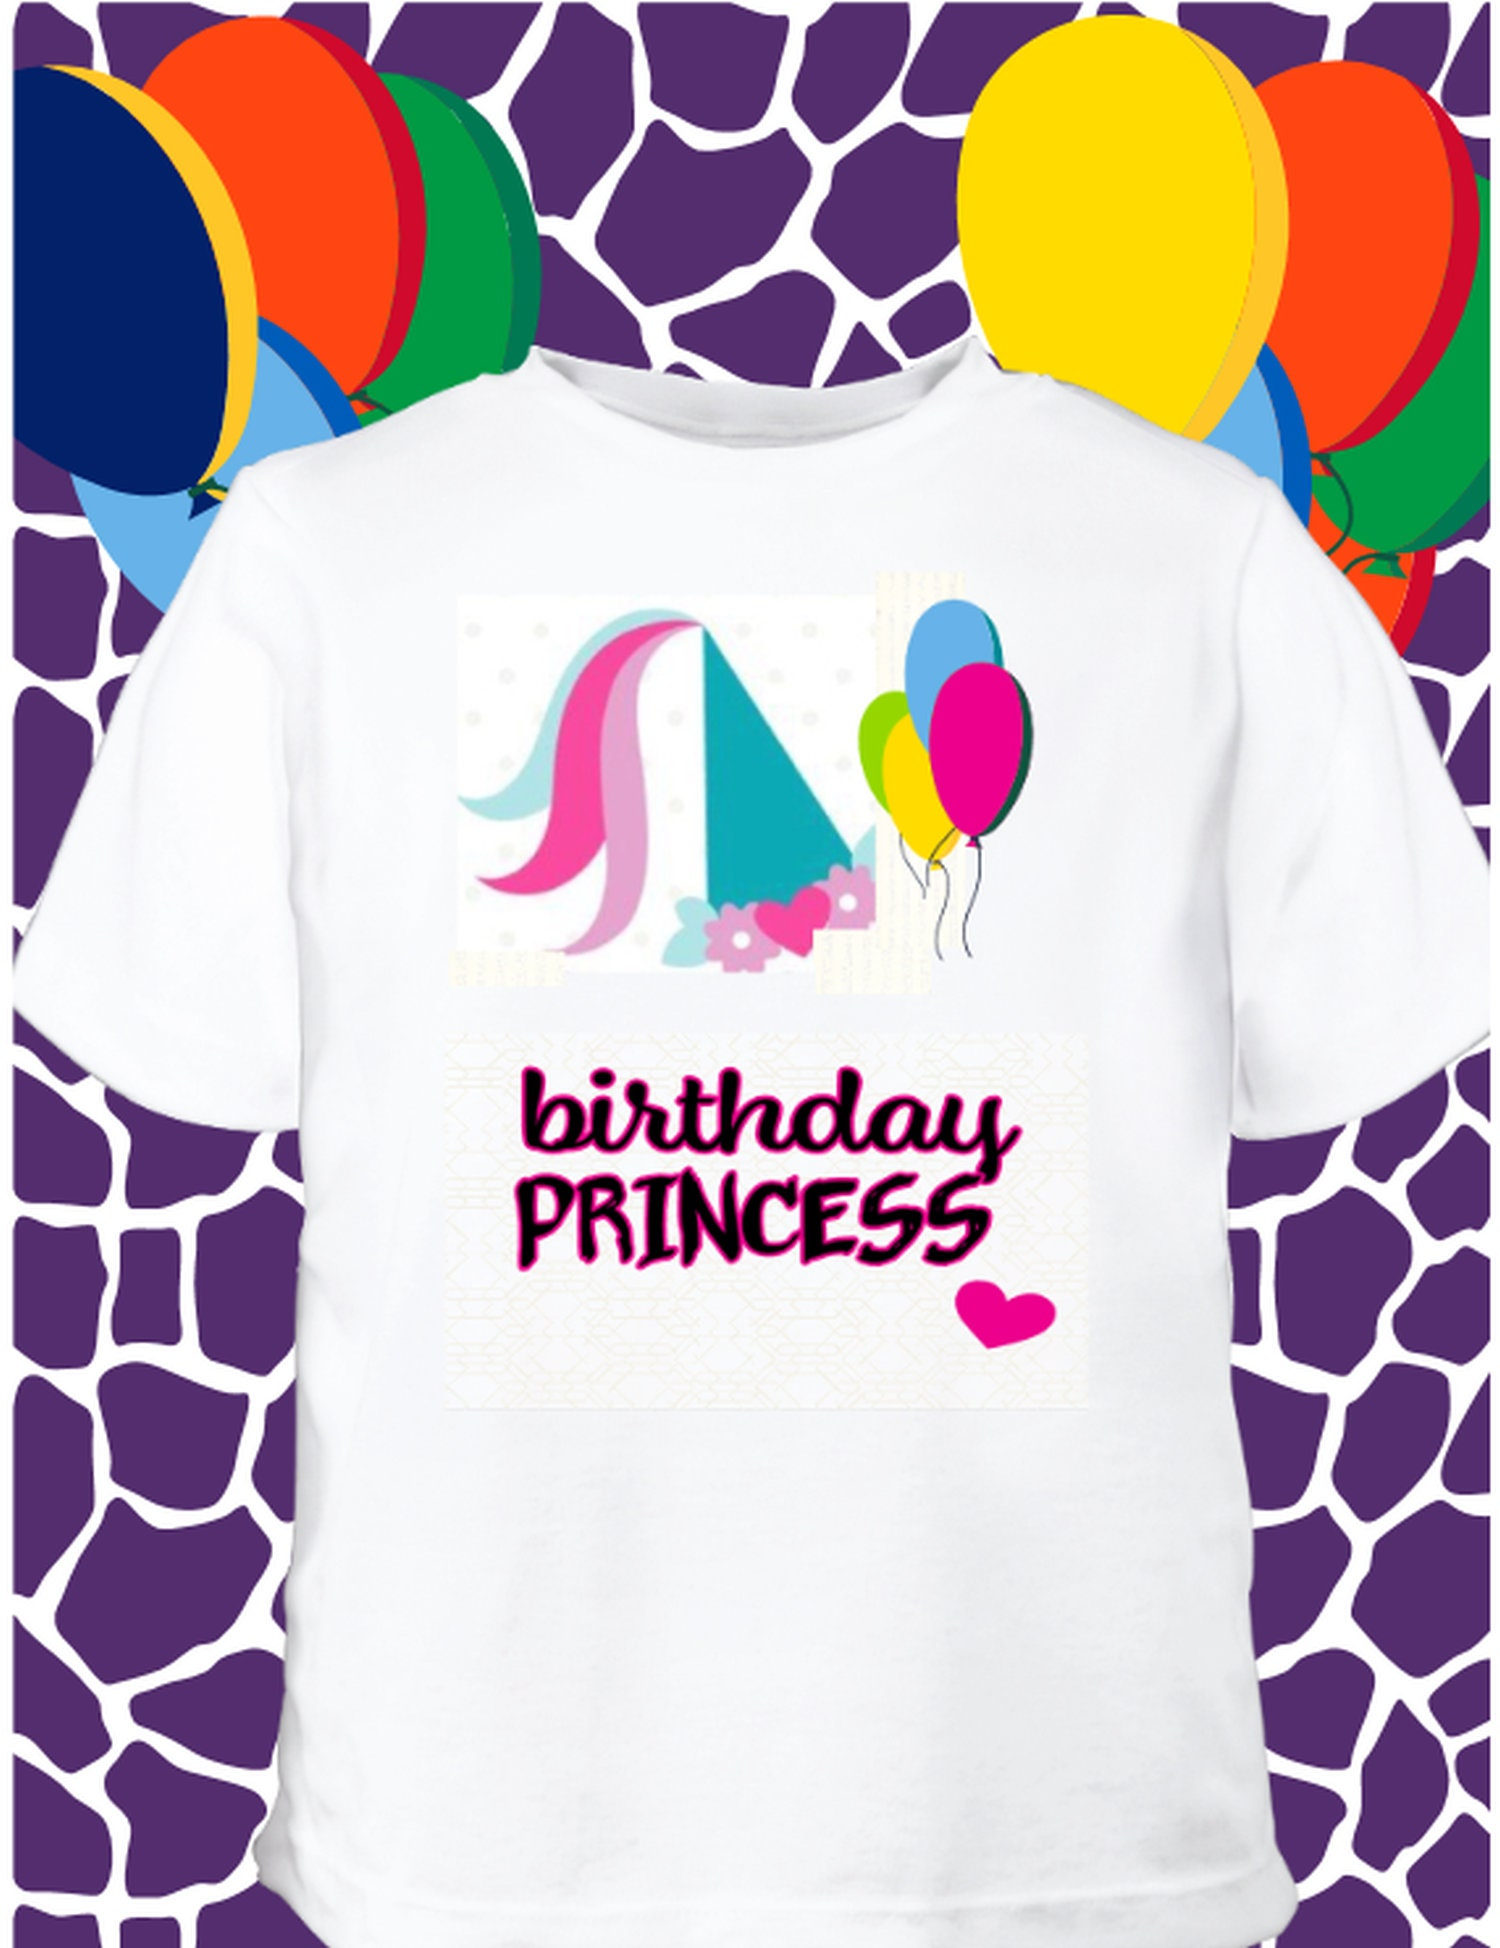 Birthday Princess Celebratory Apparel For The Little Customized T Shirt Female Toddlers